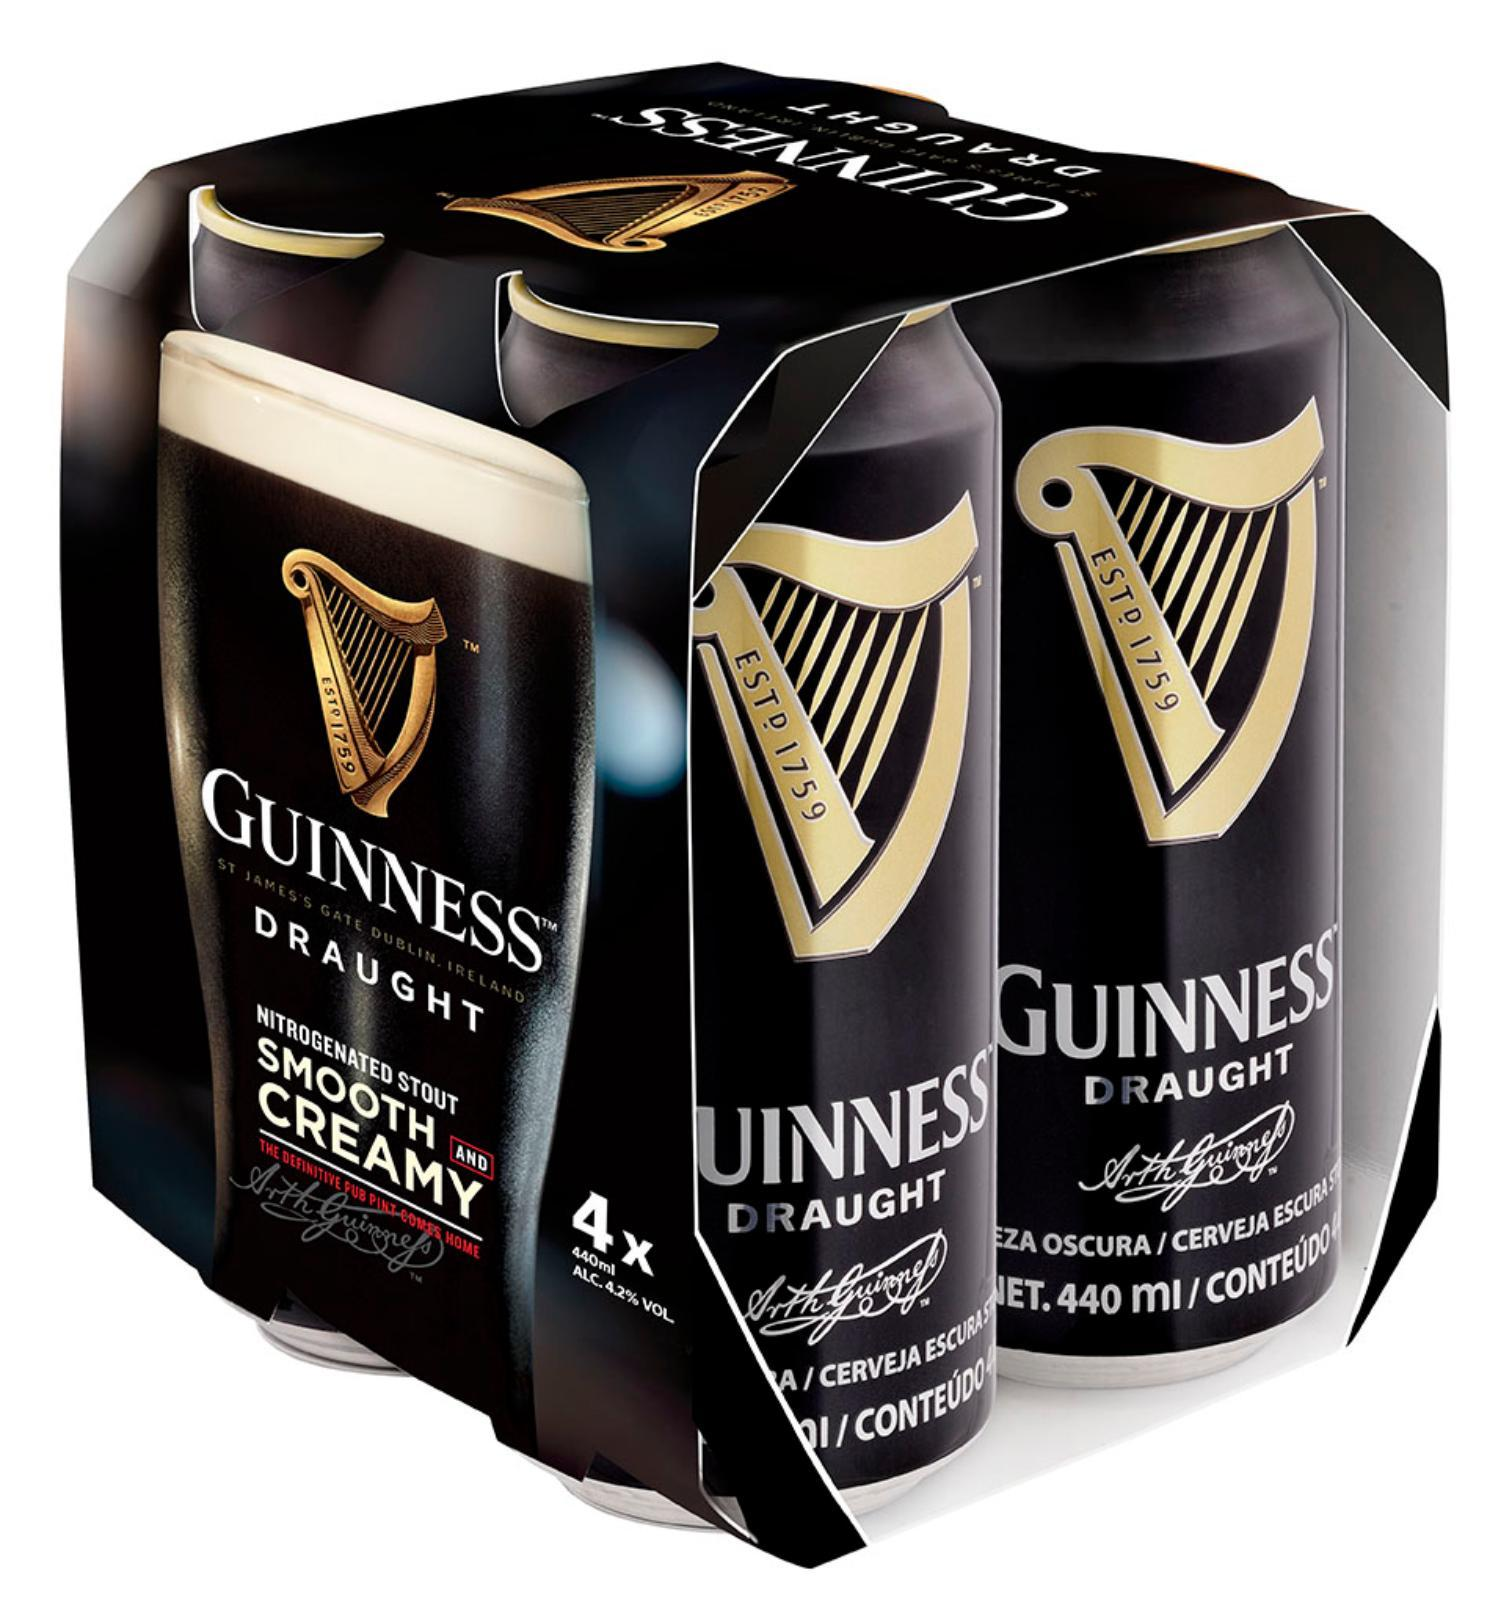 GUINNESS Draught Beer 4sX320ml